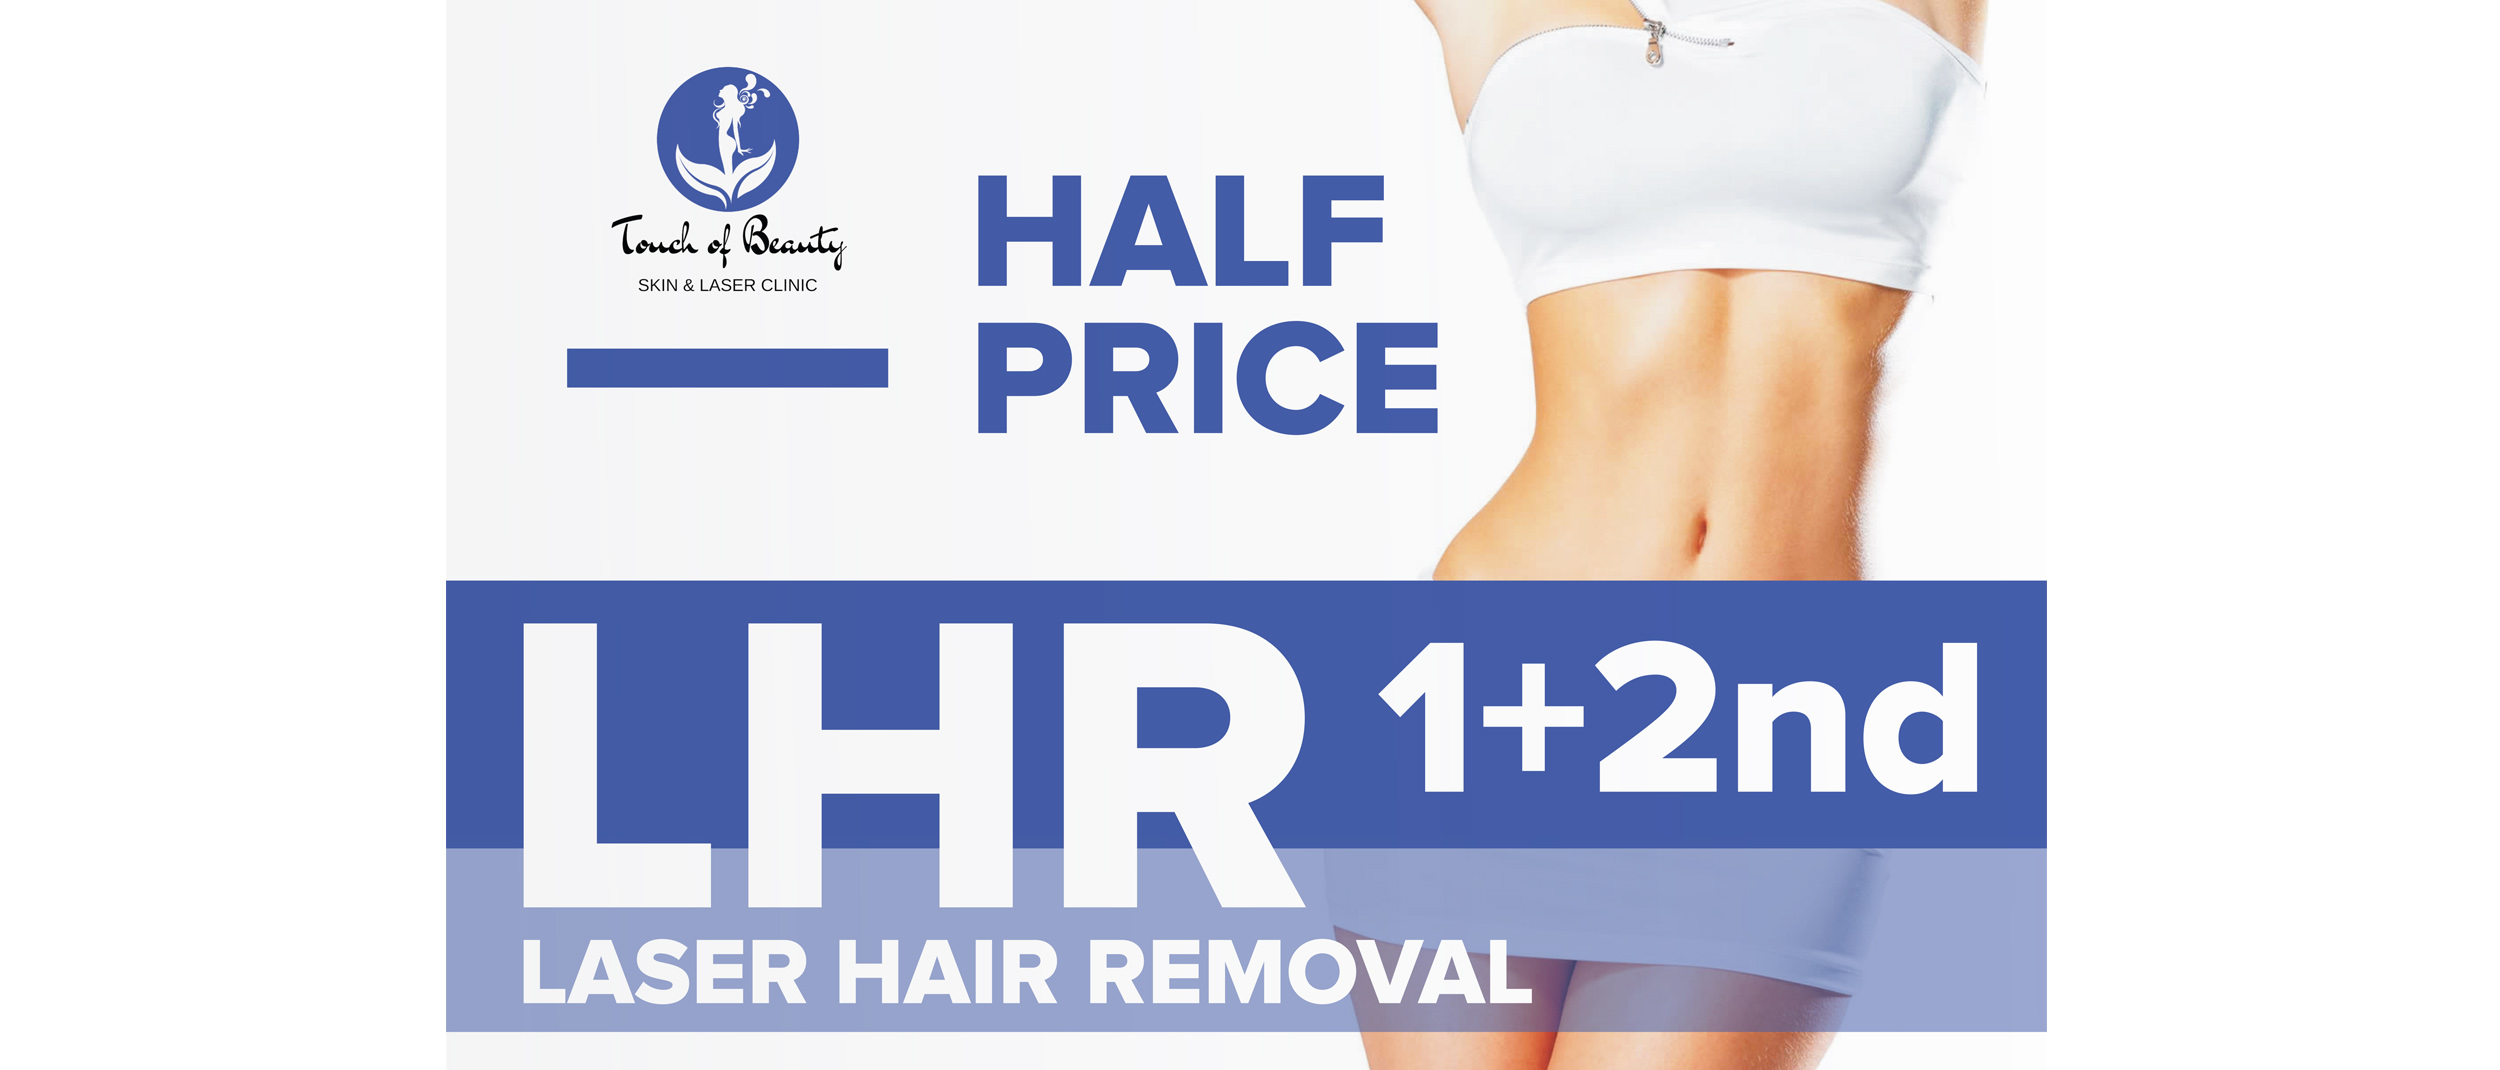 touchofbeauty.ie laser hair removal promo